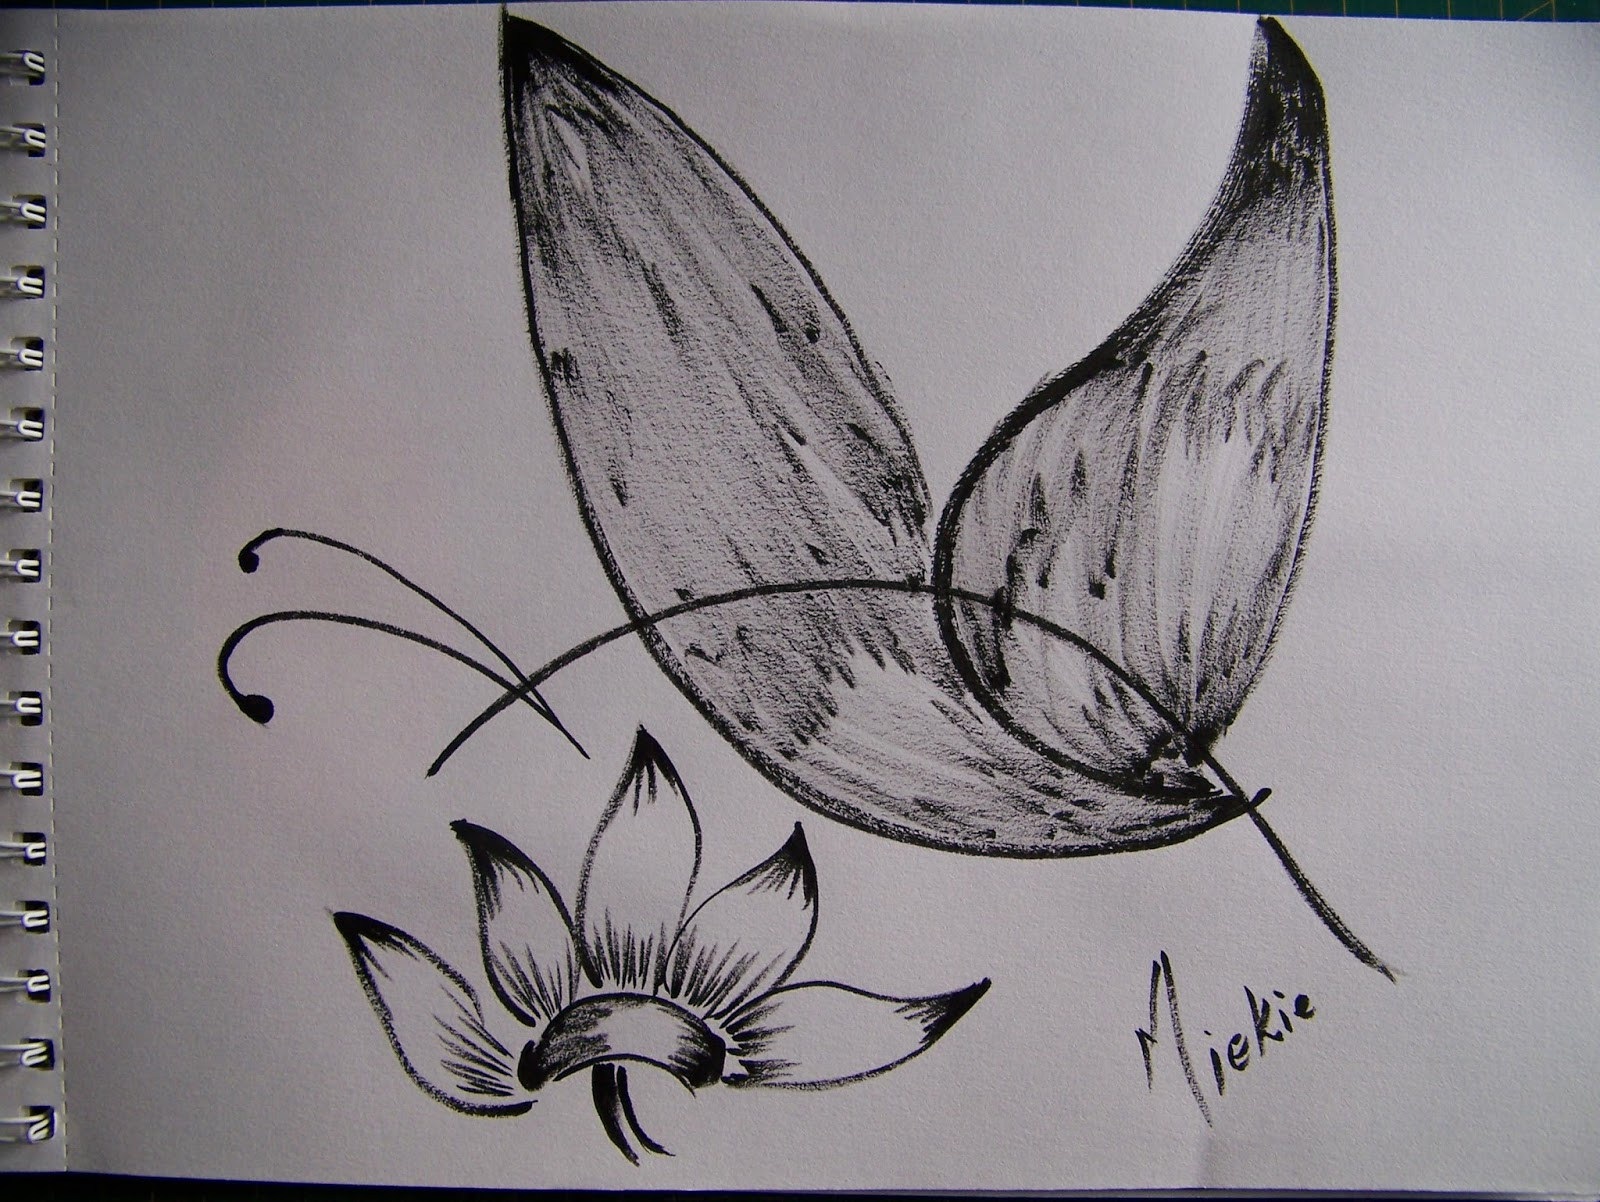 Black And White Line Drawing Flower : Flowers in ink pen dotted style eps stock photo picture and